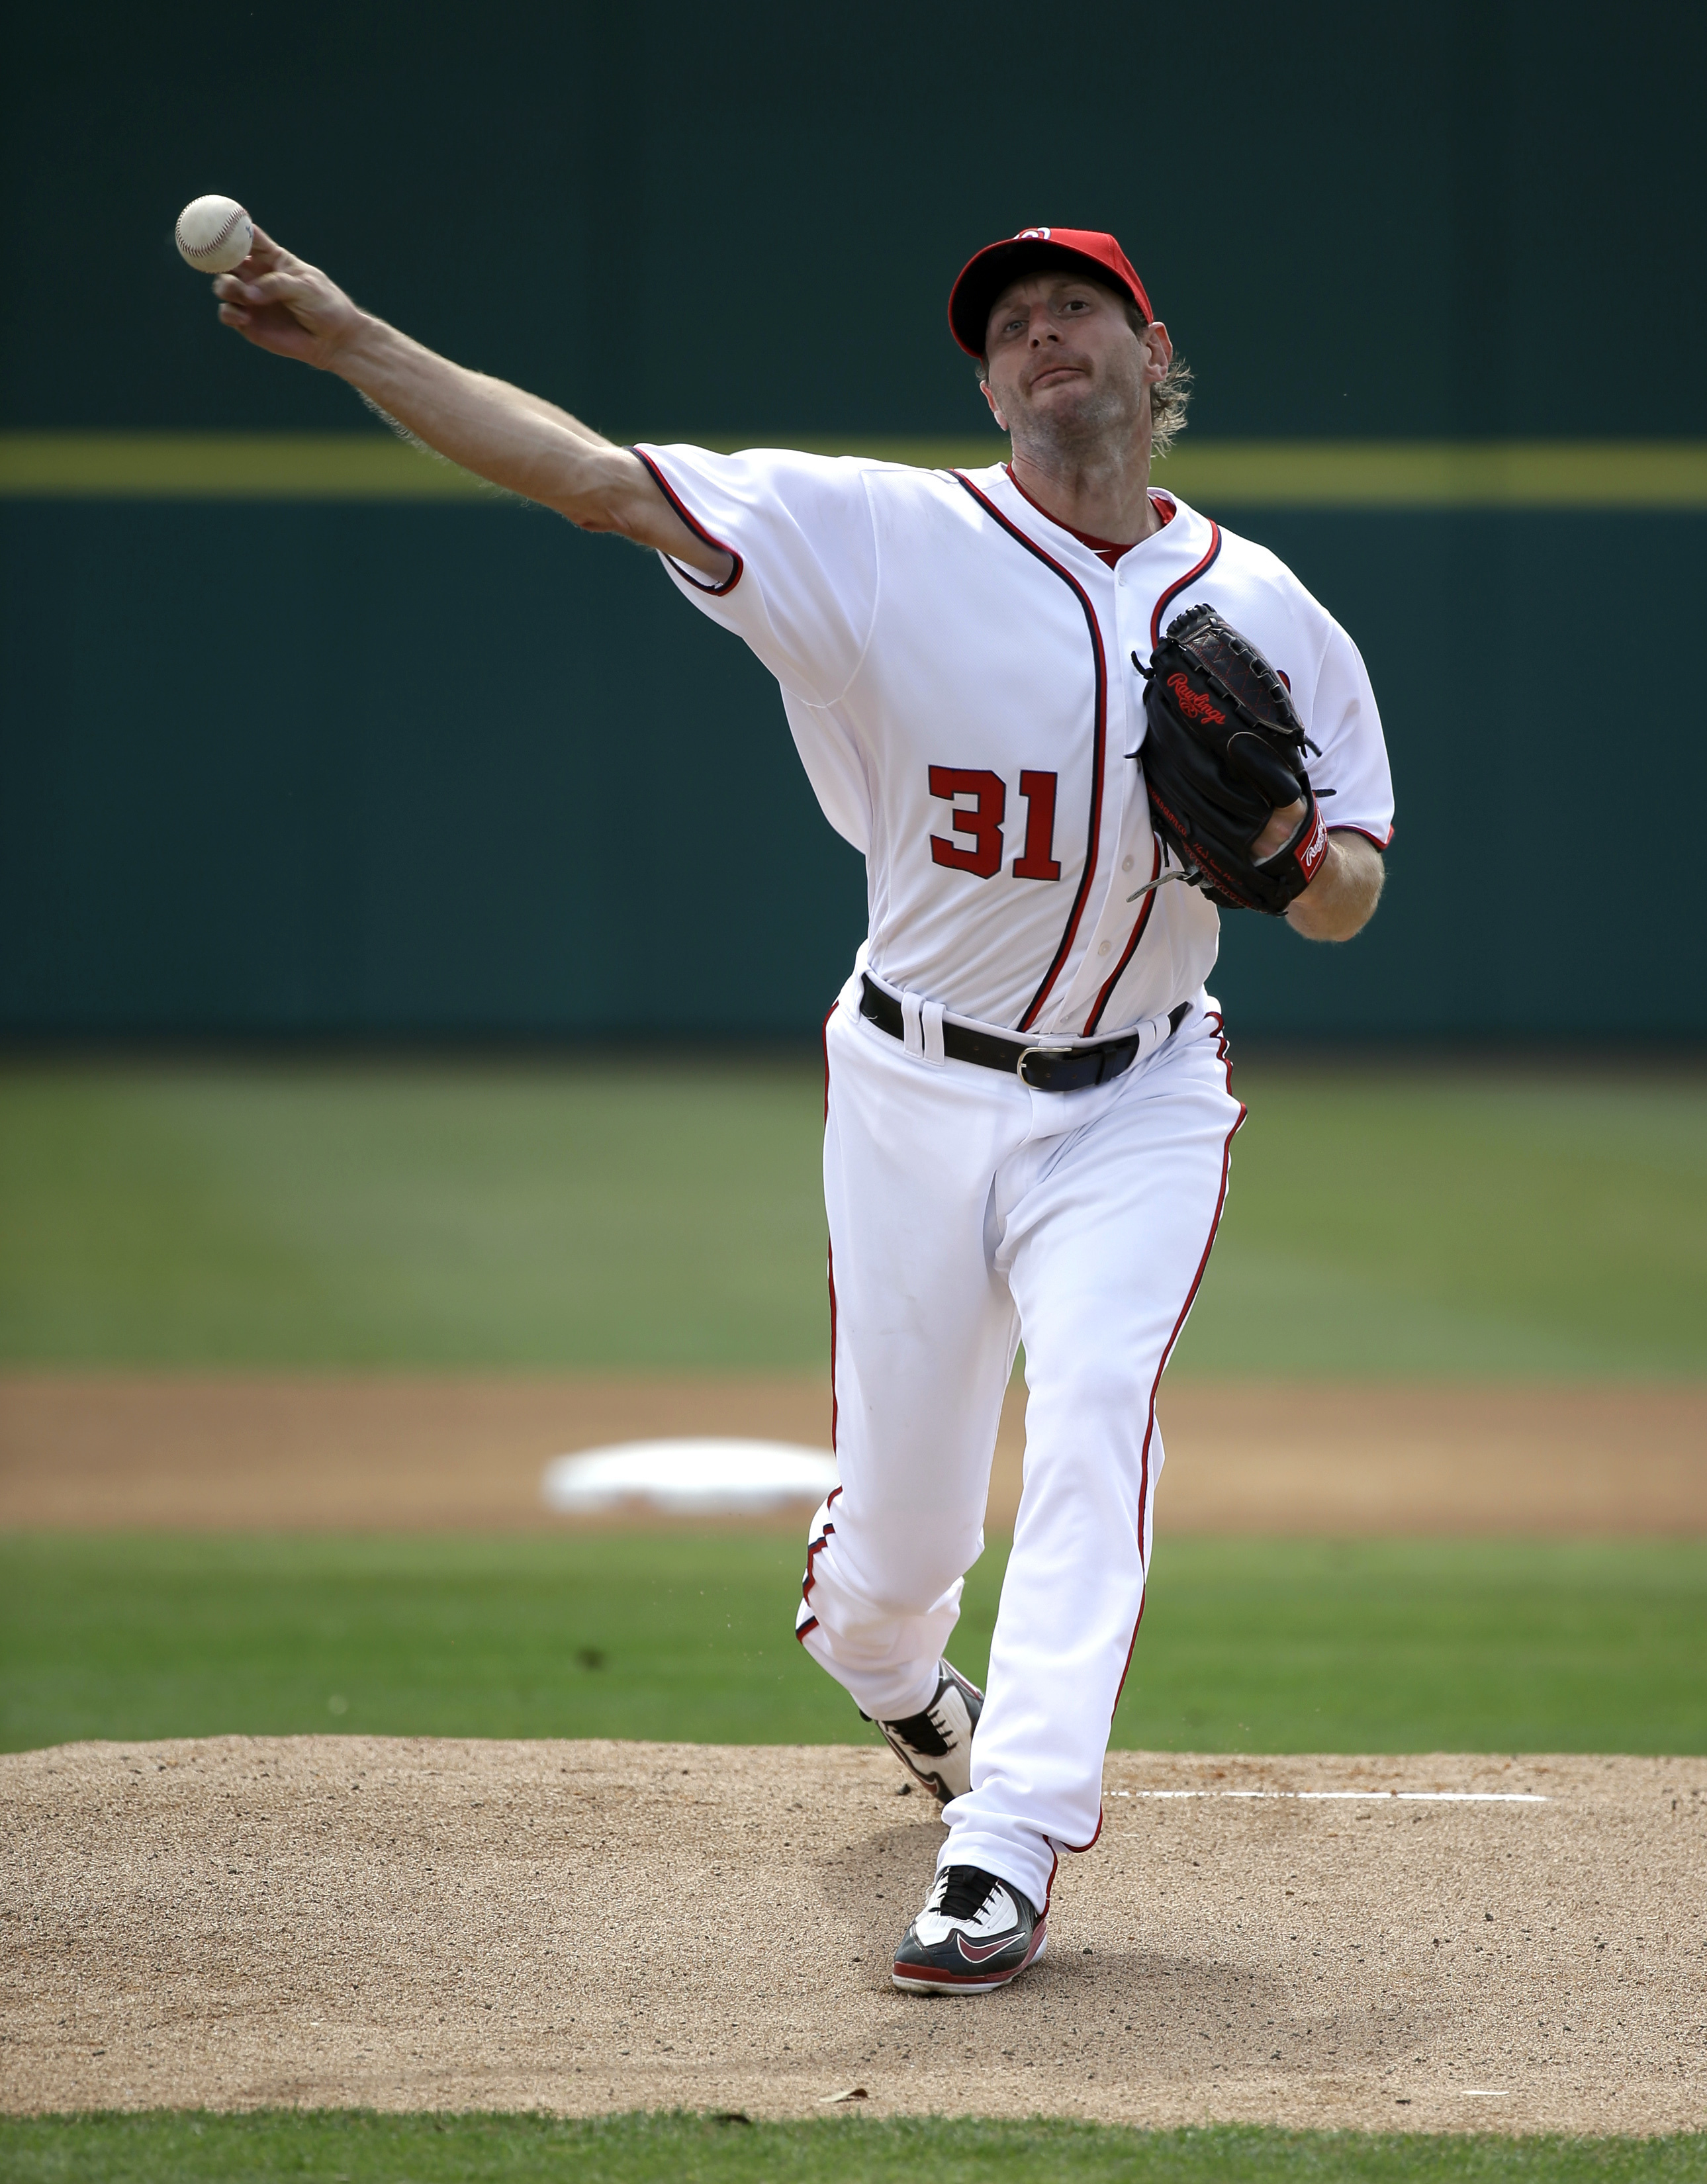 Washington Nationals' Max Scherzer (31) throws in the first inning of a spring training baseball game against the St. Louis Cardinals, Sunday, March 13, 2016, in Viera, Fla. (AP Photo/John Raoux)